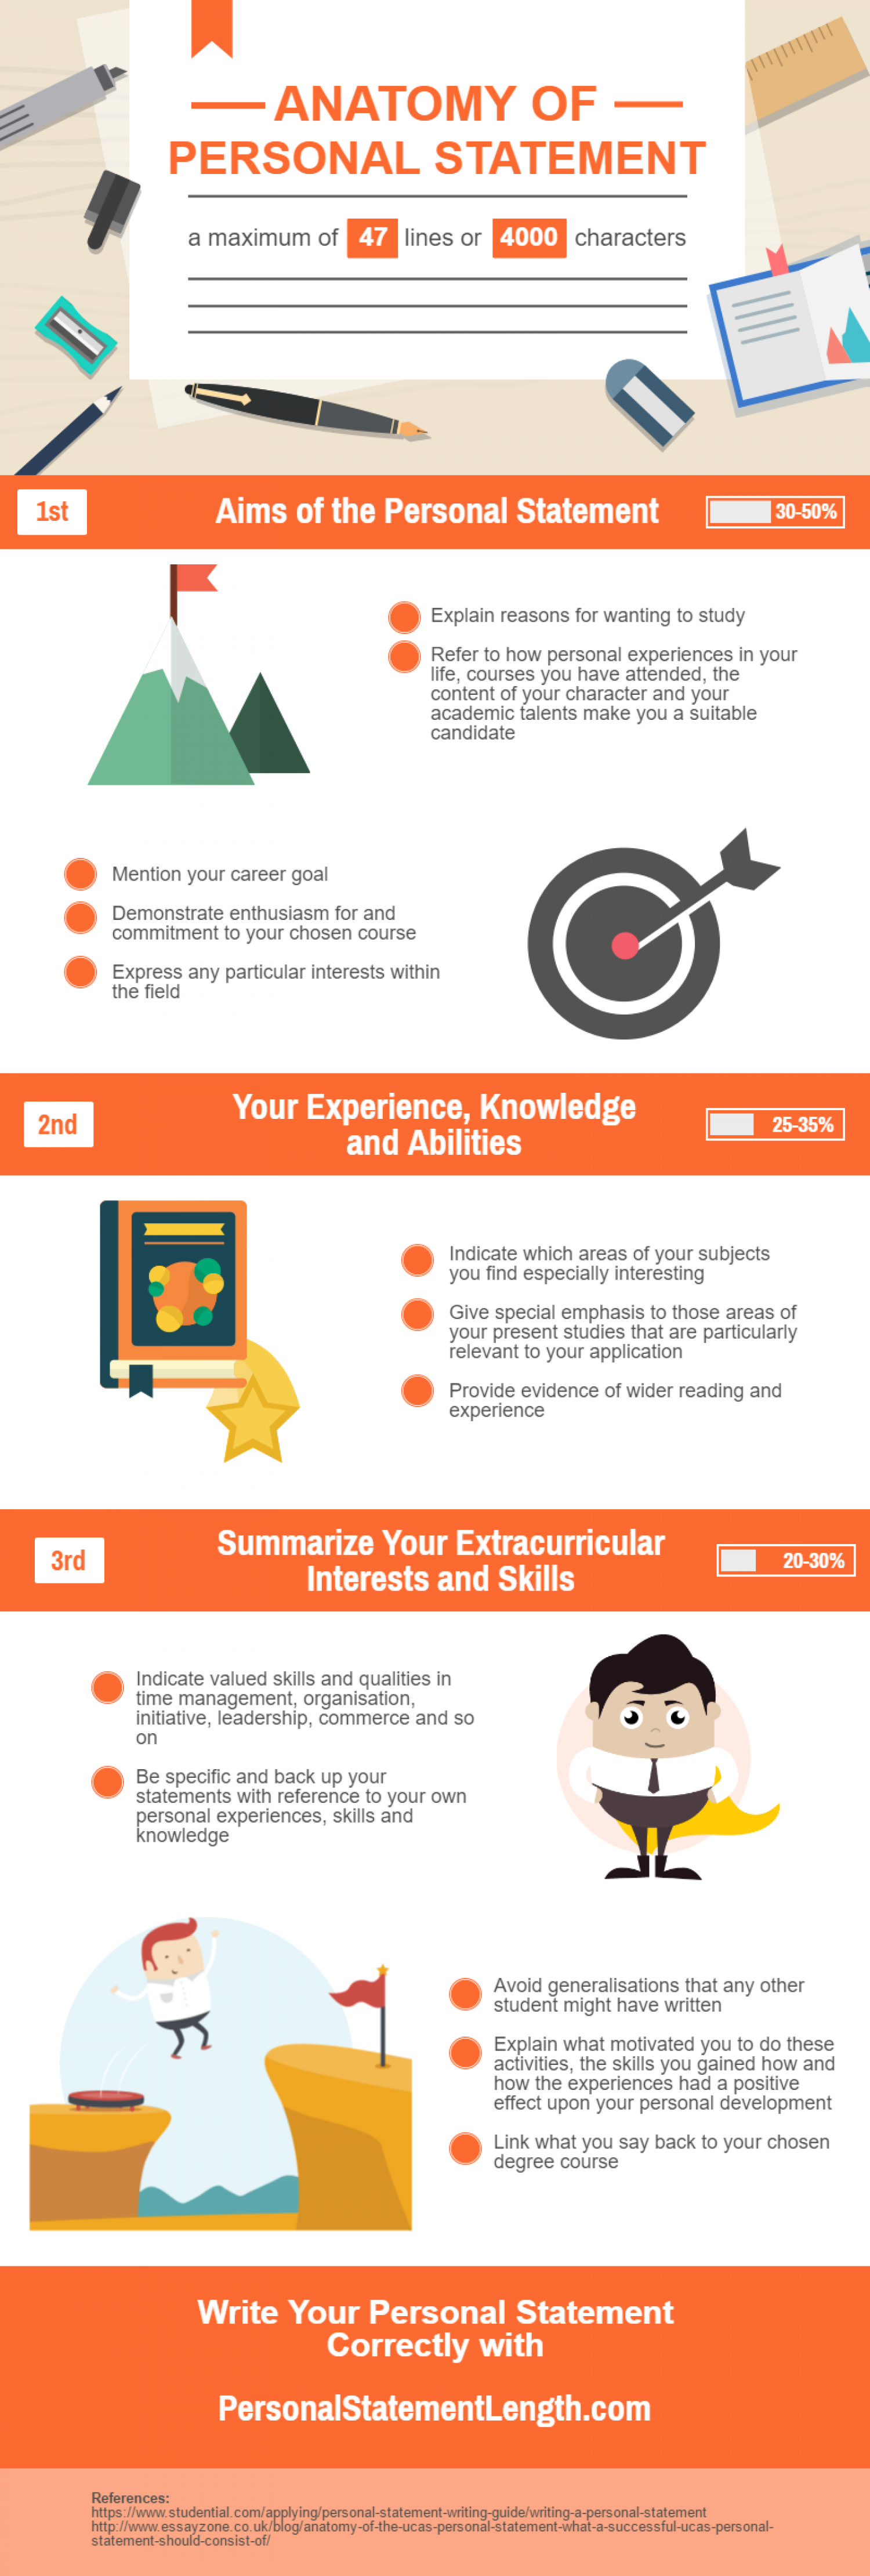 Anatomy of Personal Statement | Visual.ly